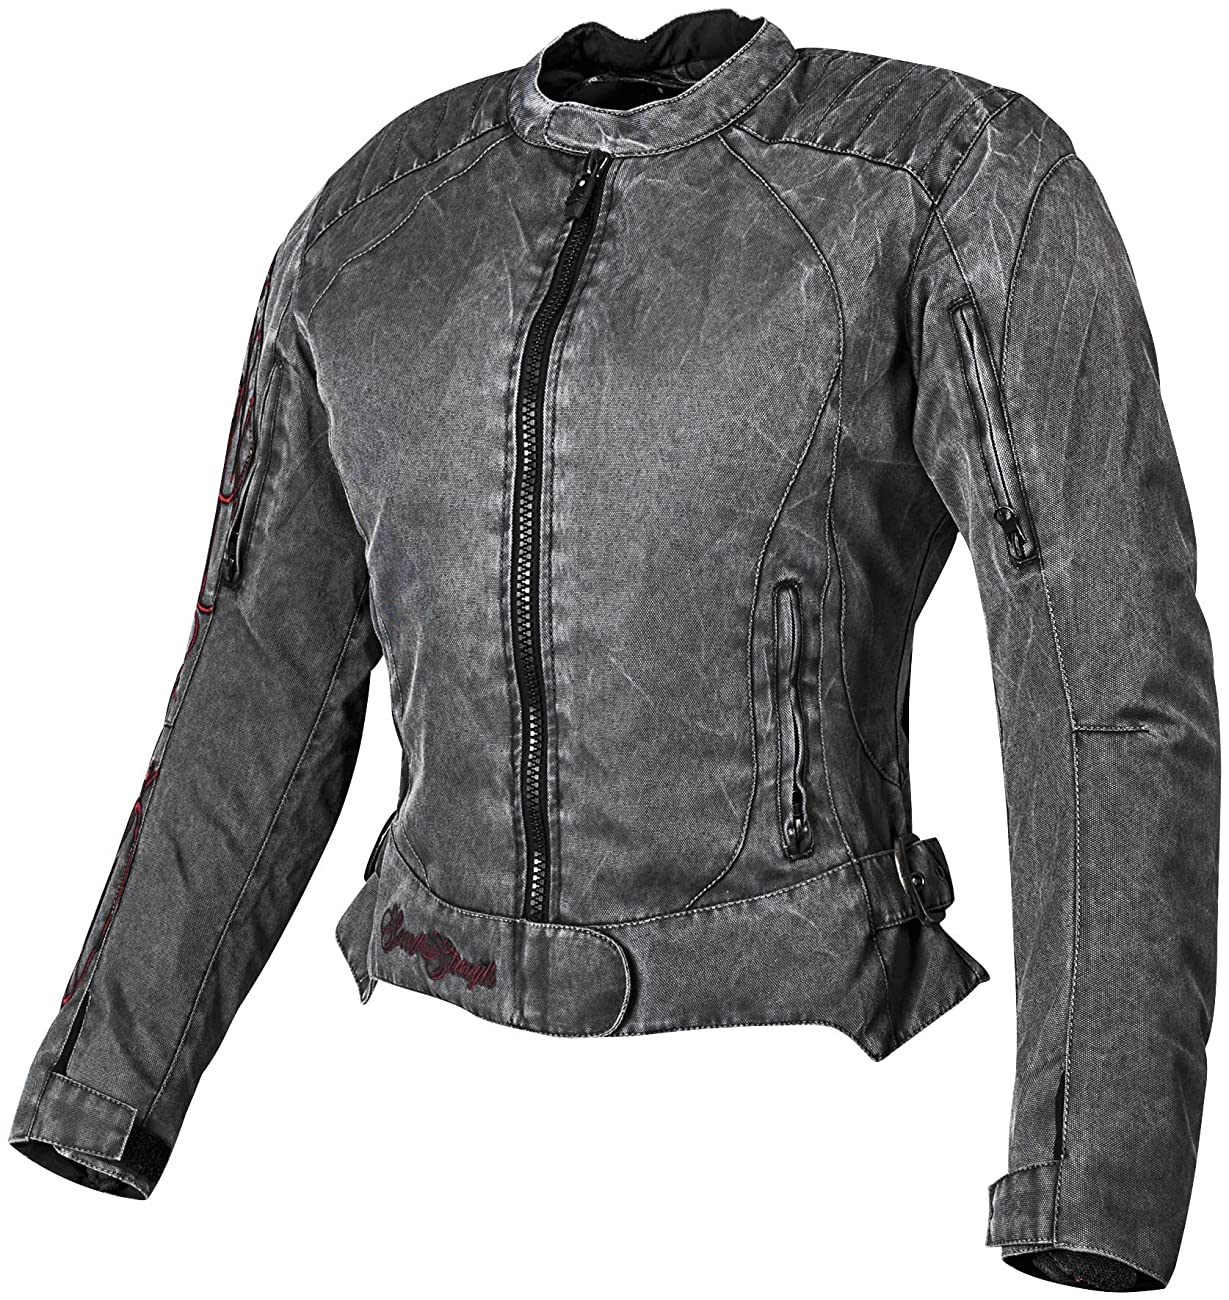 Speed and Strength Heart and Soul Women's Mesh Street Bike Racing Motorcycle Jacket - Vintage Black/Red / 2X-Large 0